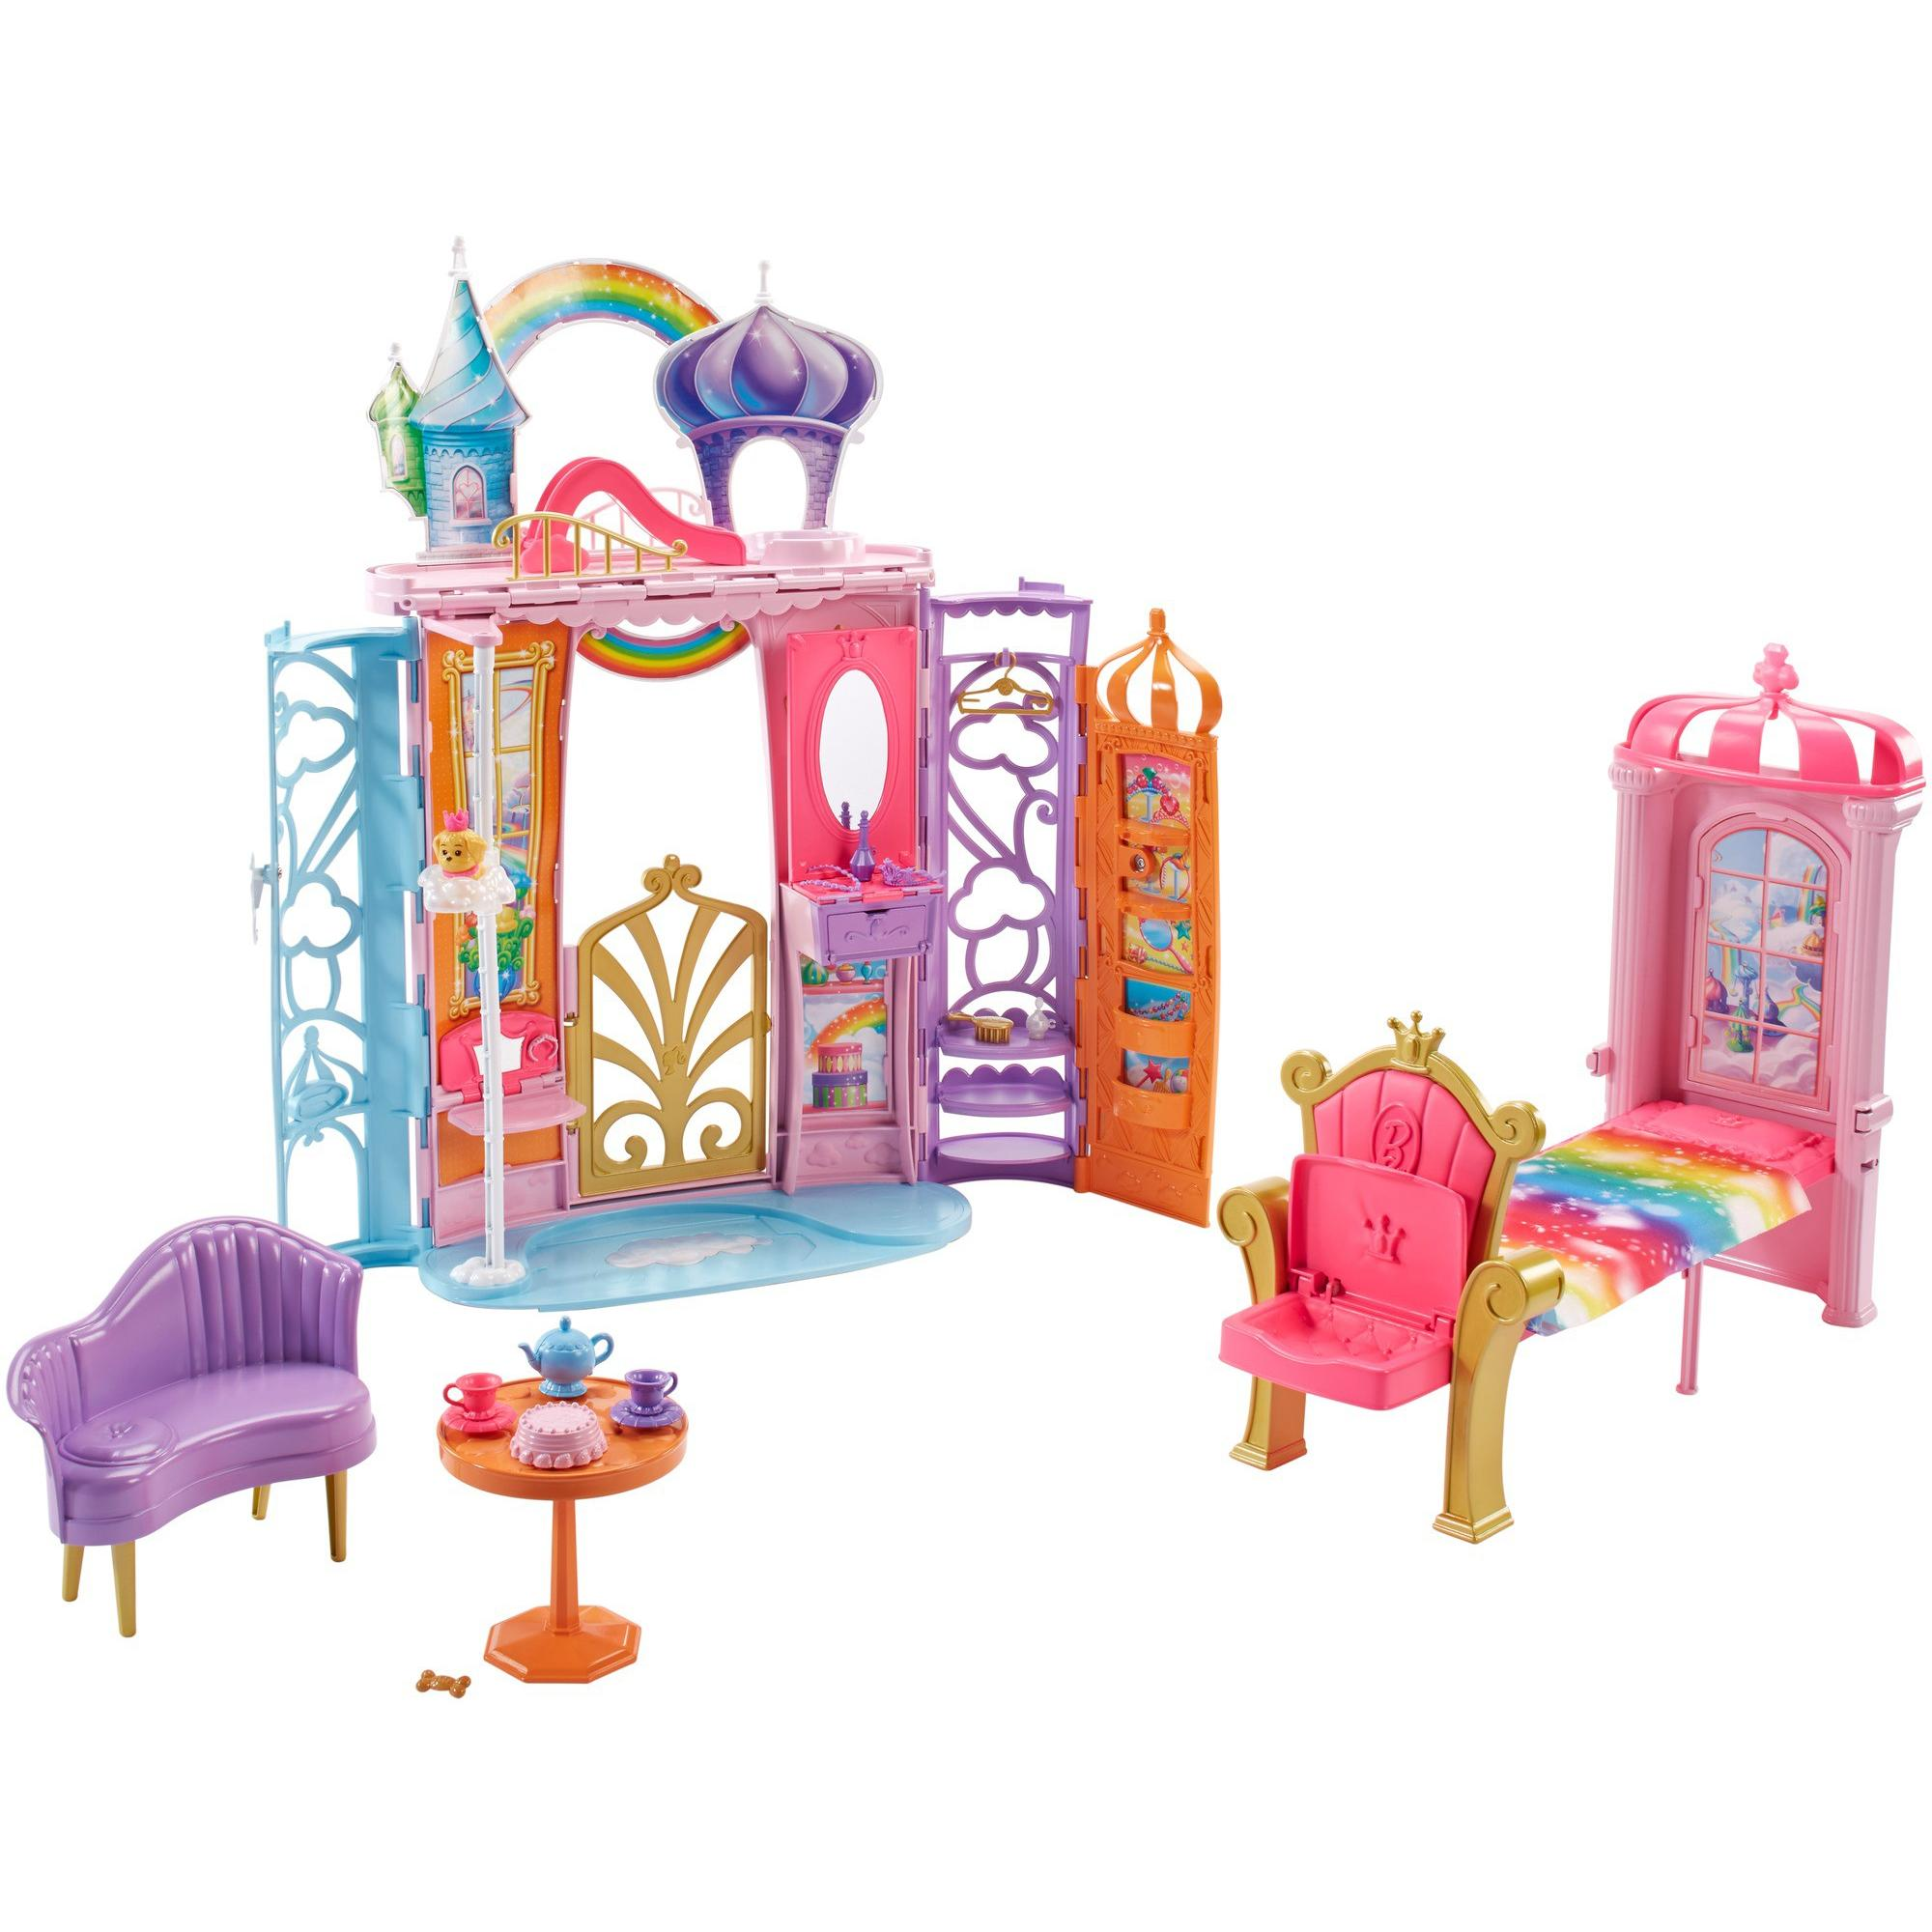 Barbie Dreamtopia Castle Portable Playset with Transforming Features by Mattel